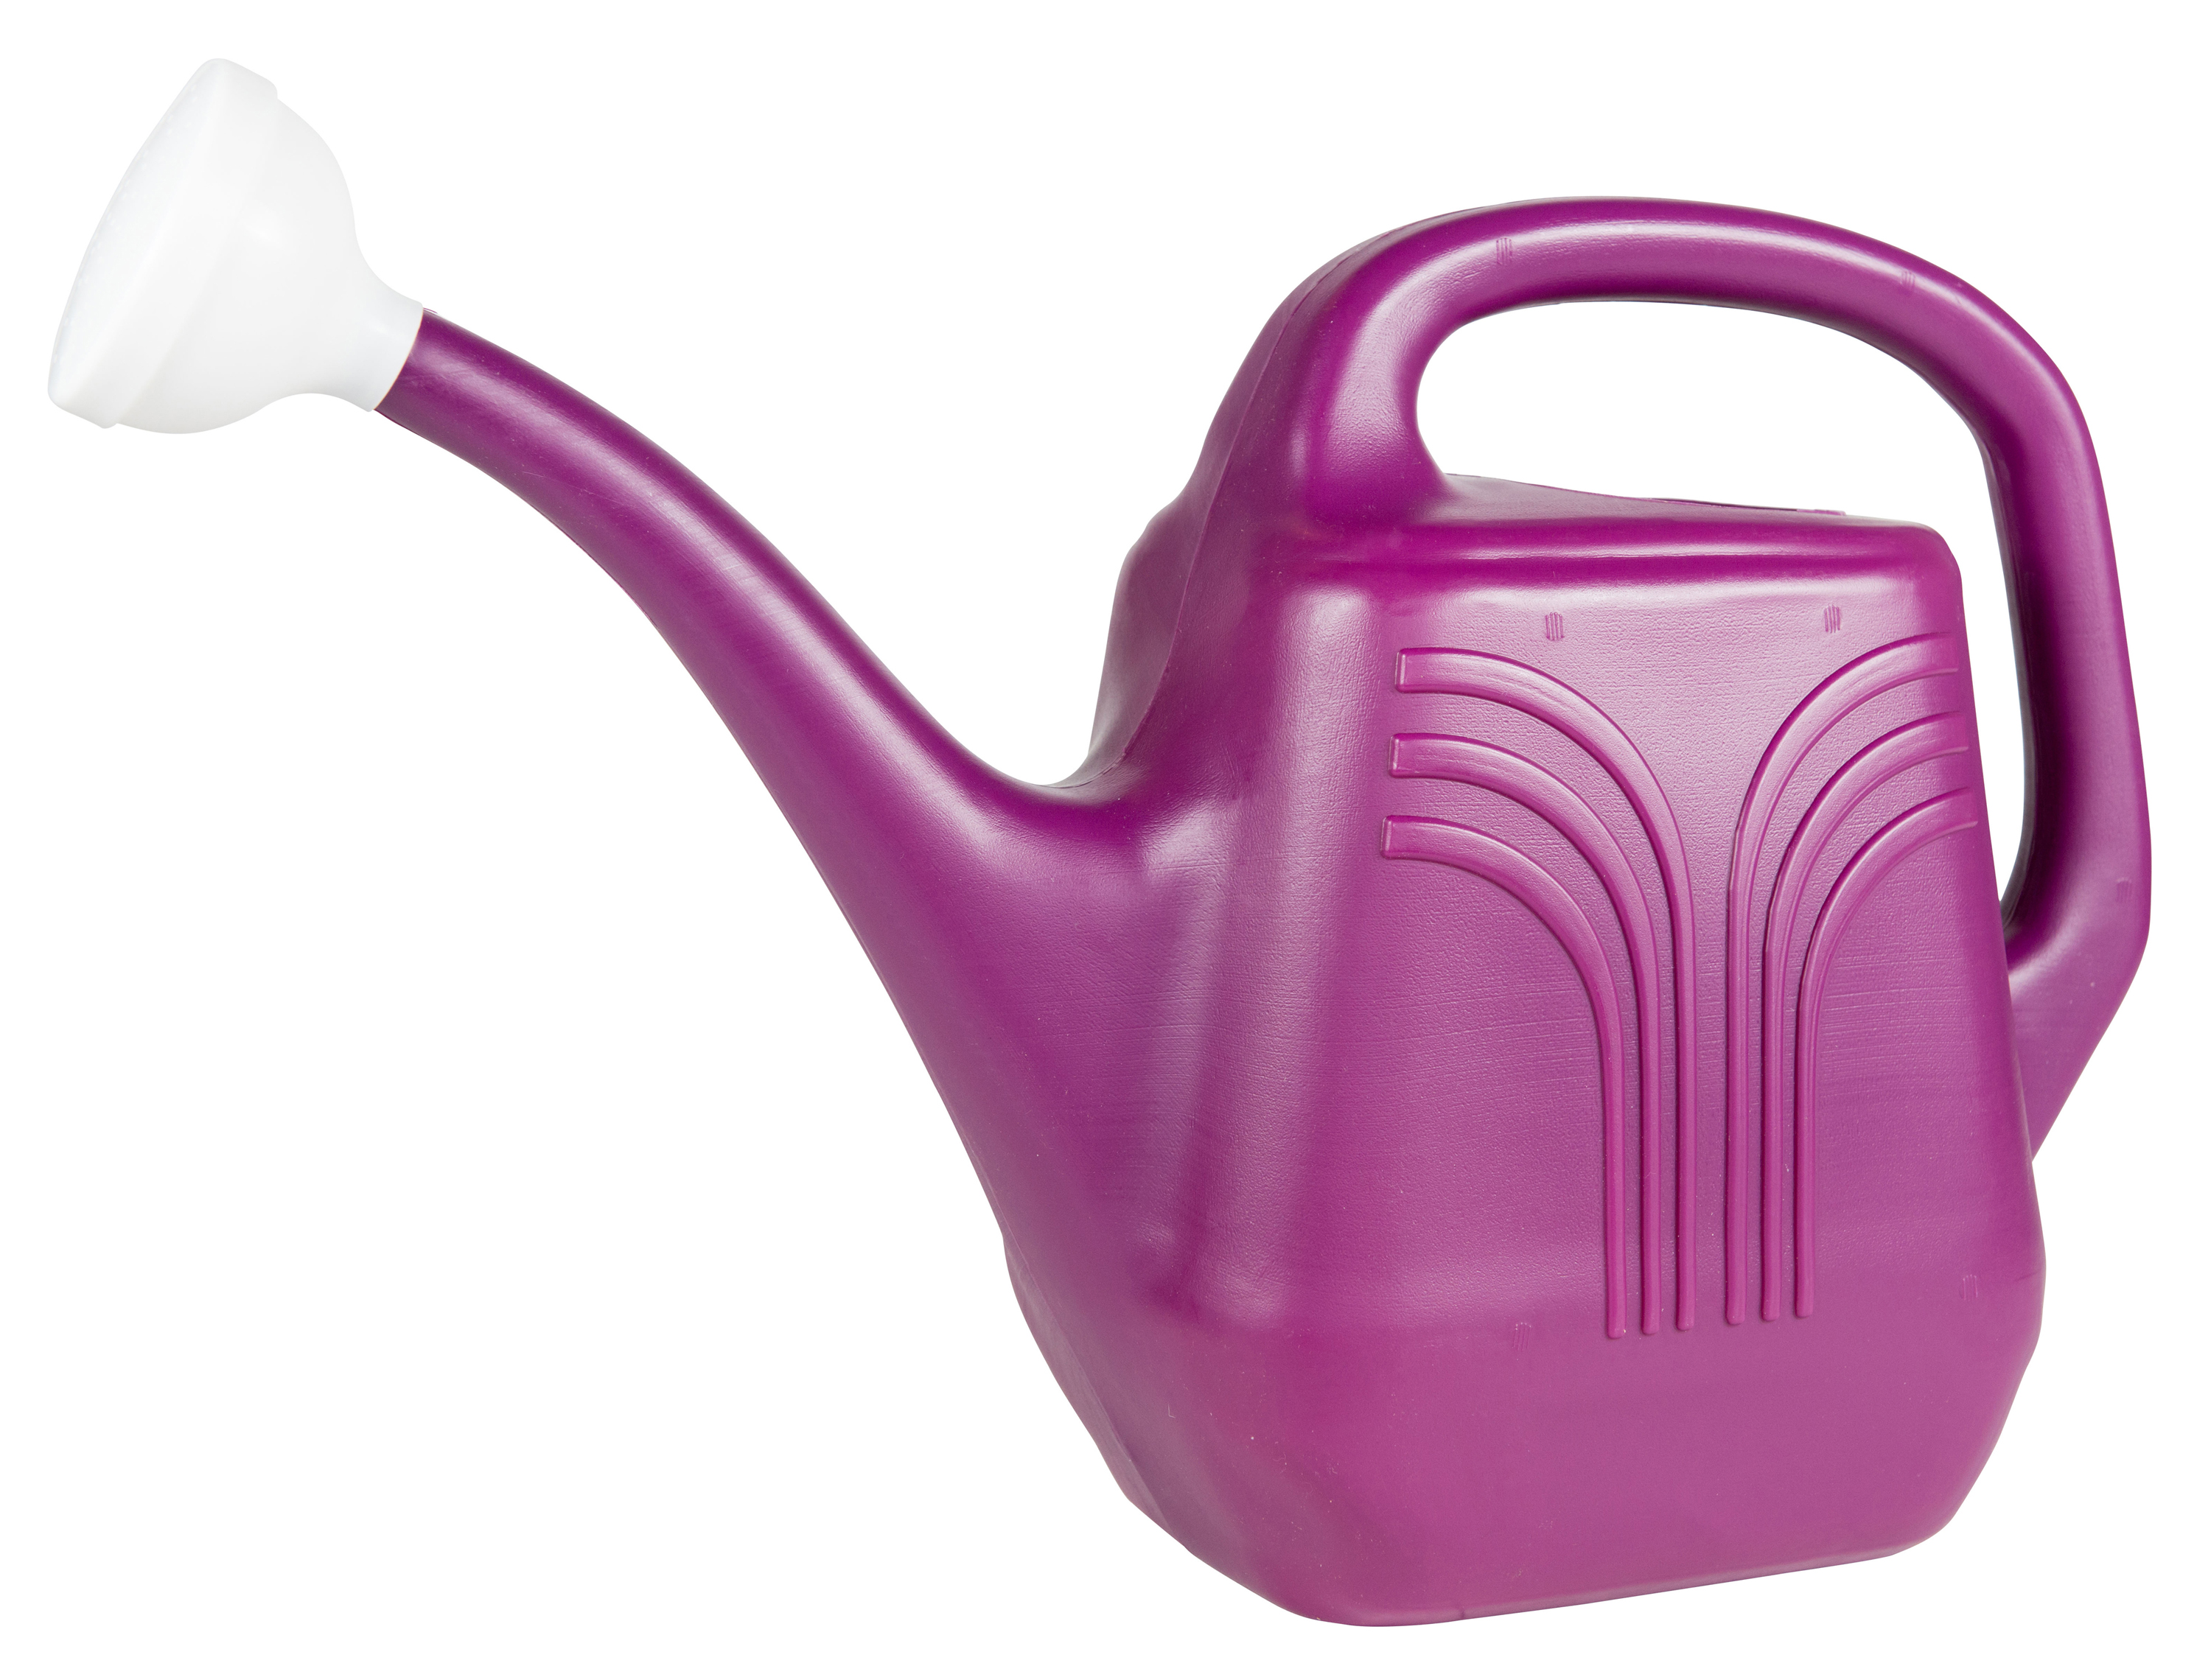 Bloem Classic JW Watering Can 2 Gallon Passion Fruit by Bloem